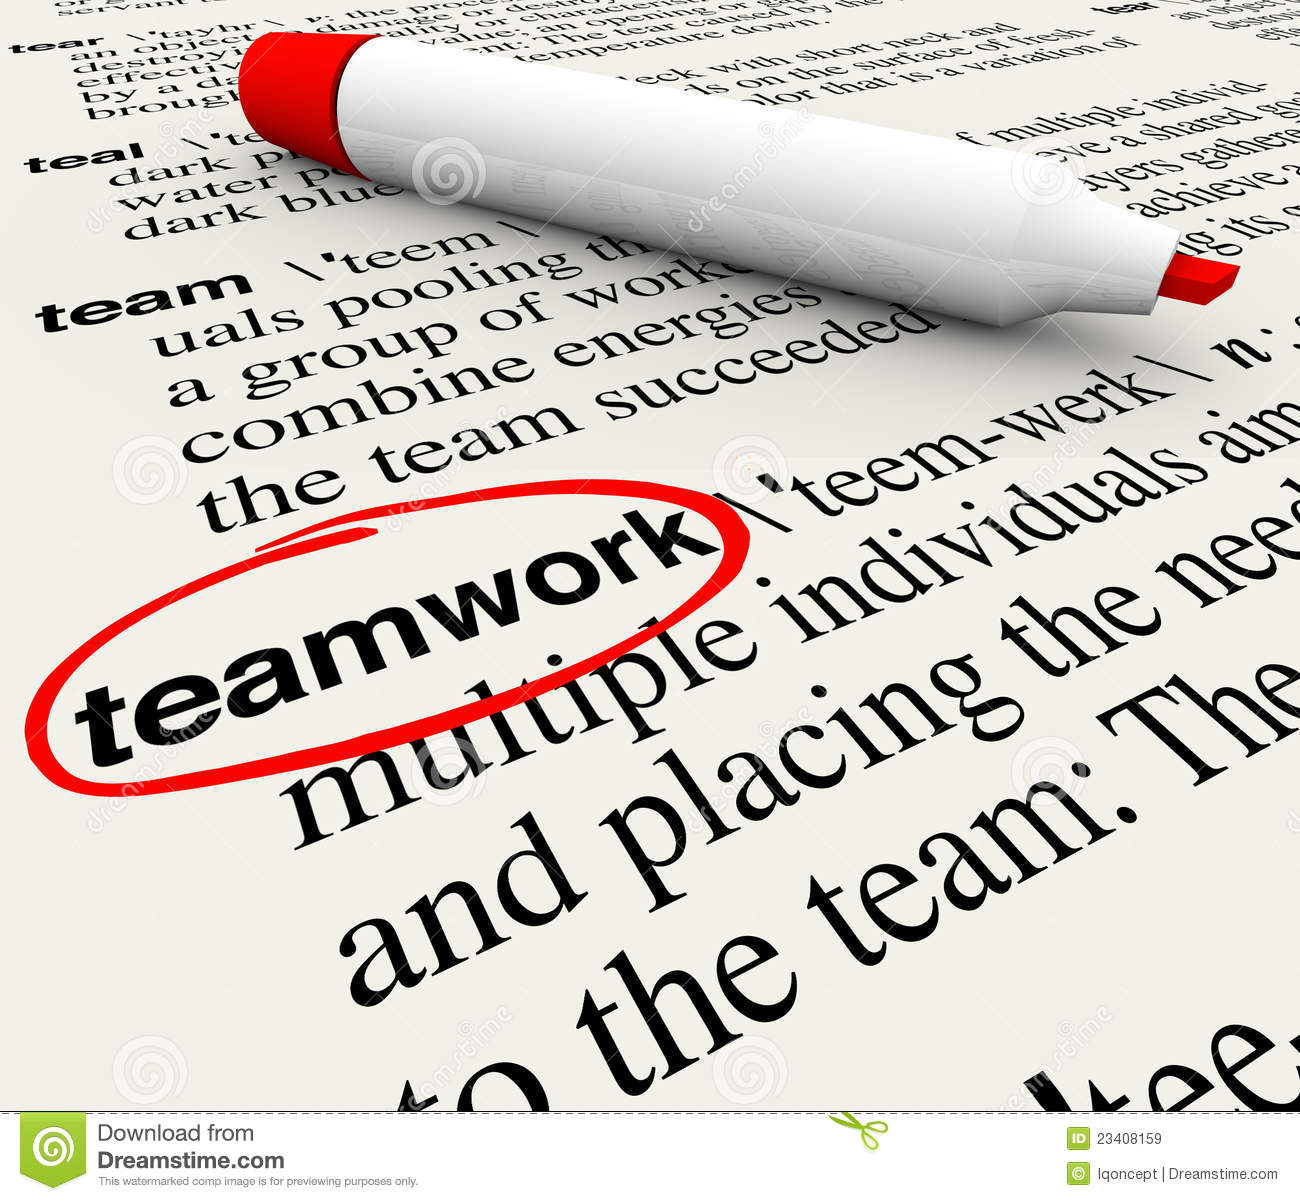 teamwork dictionary definition word circled royalty stock teamwork dictionary definition word circled